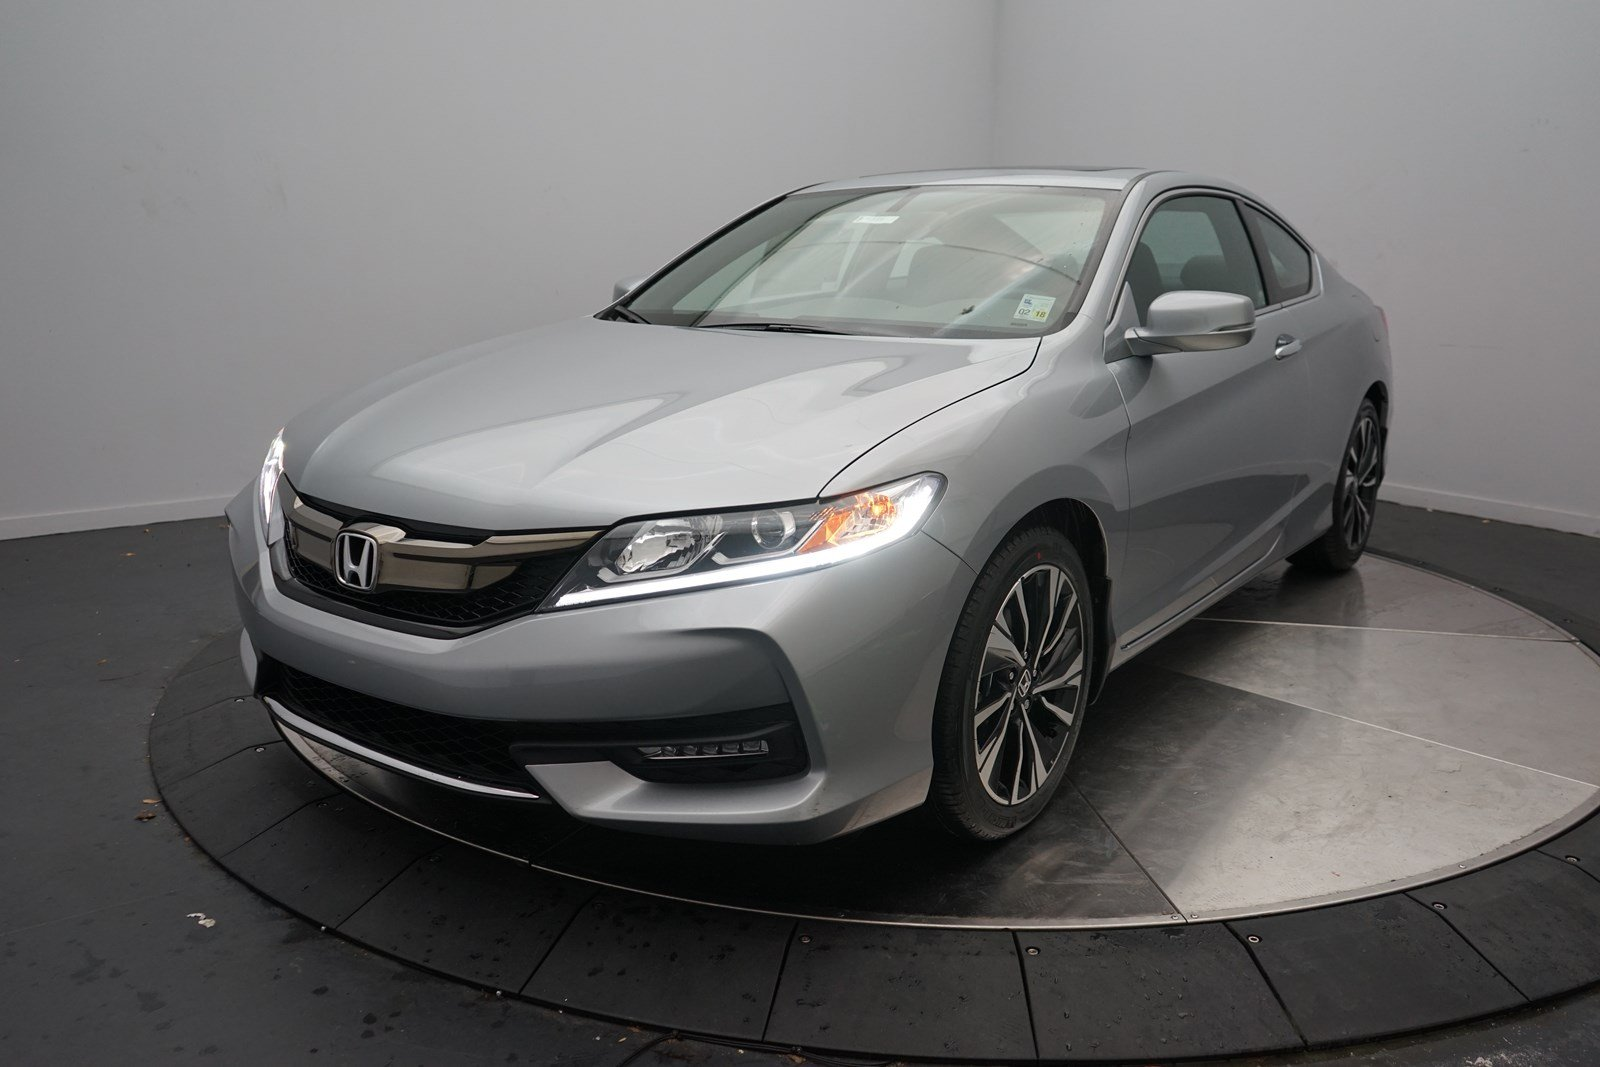 new 2017 honda accord coupe ex l v6 2dr car in shreveport. Black Bedroom Furniture Sets. Home Design Ideas